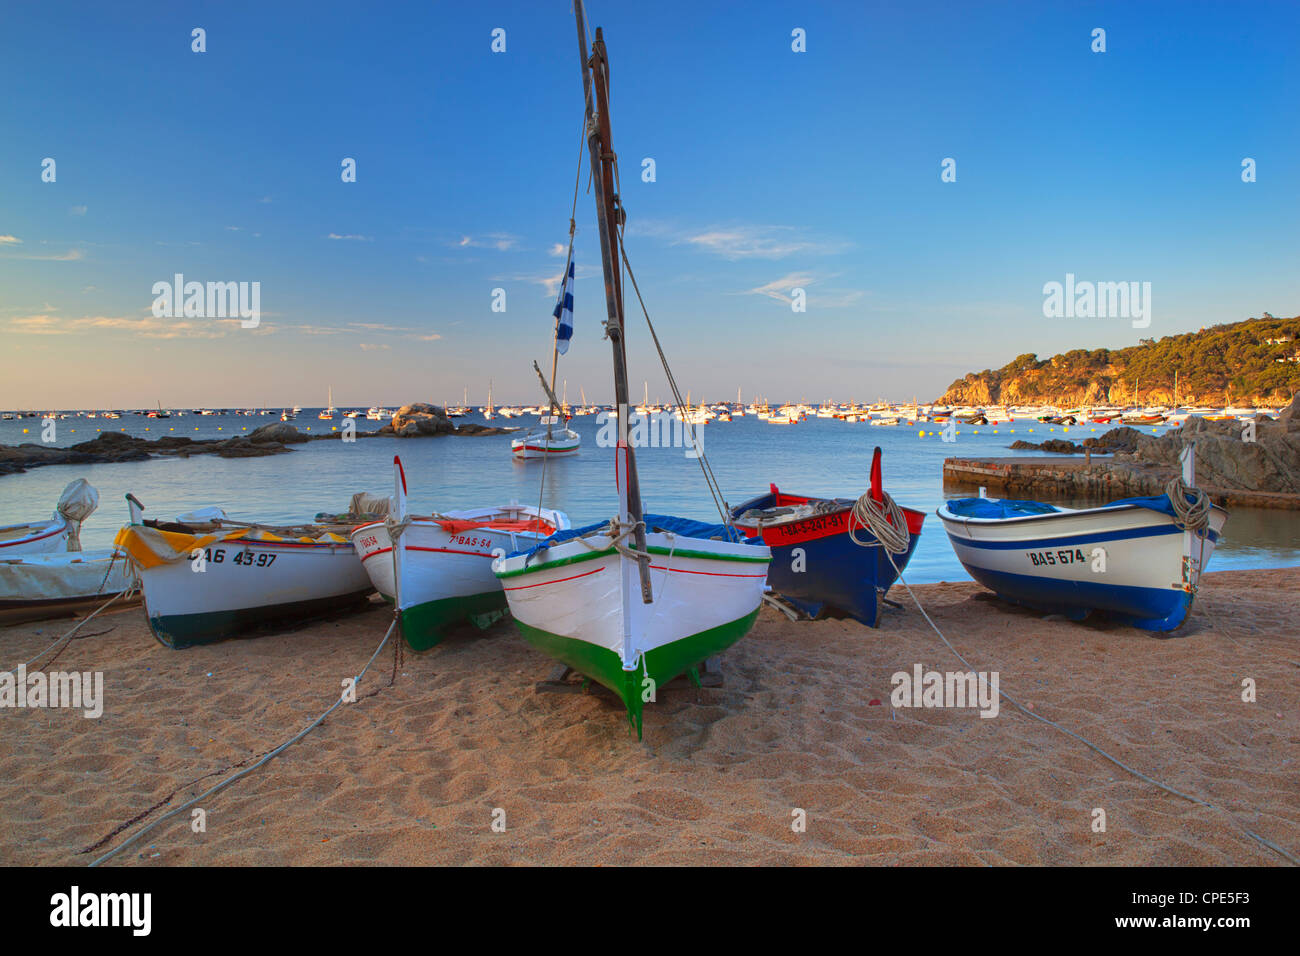 Fishing boats at dawn, Calella de Palafrugell, Costa Brava, Catalonia, Spain, Mediterranean, Europe - Stock Image